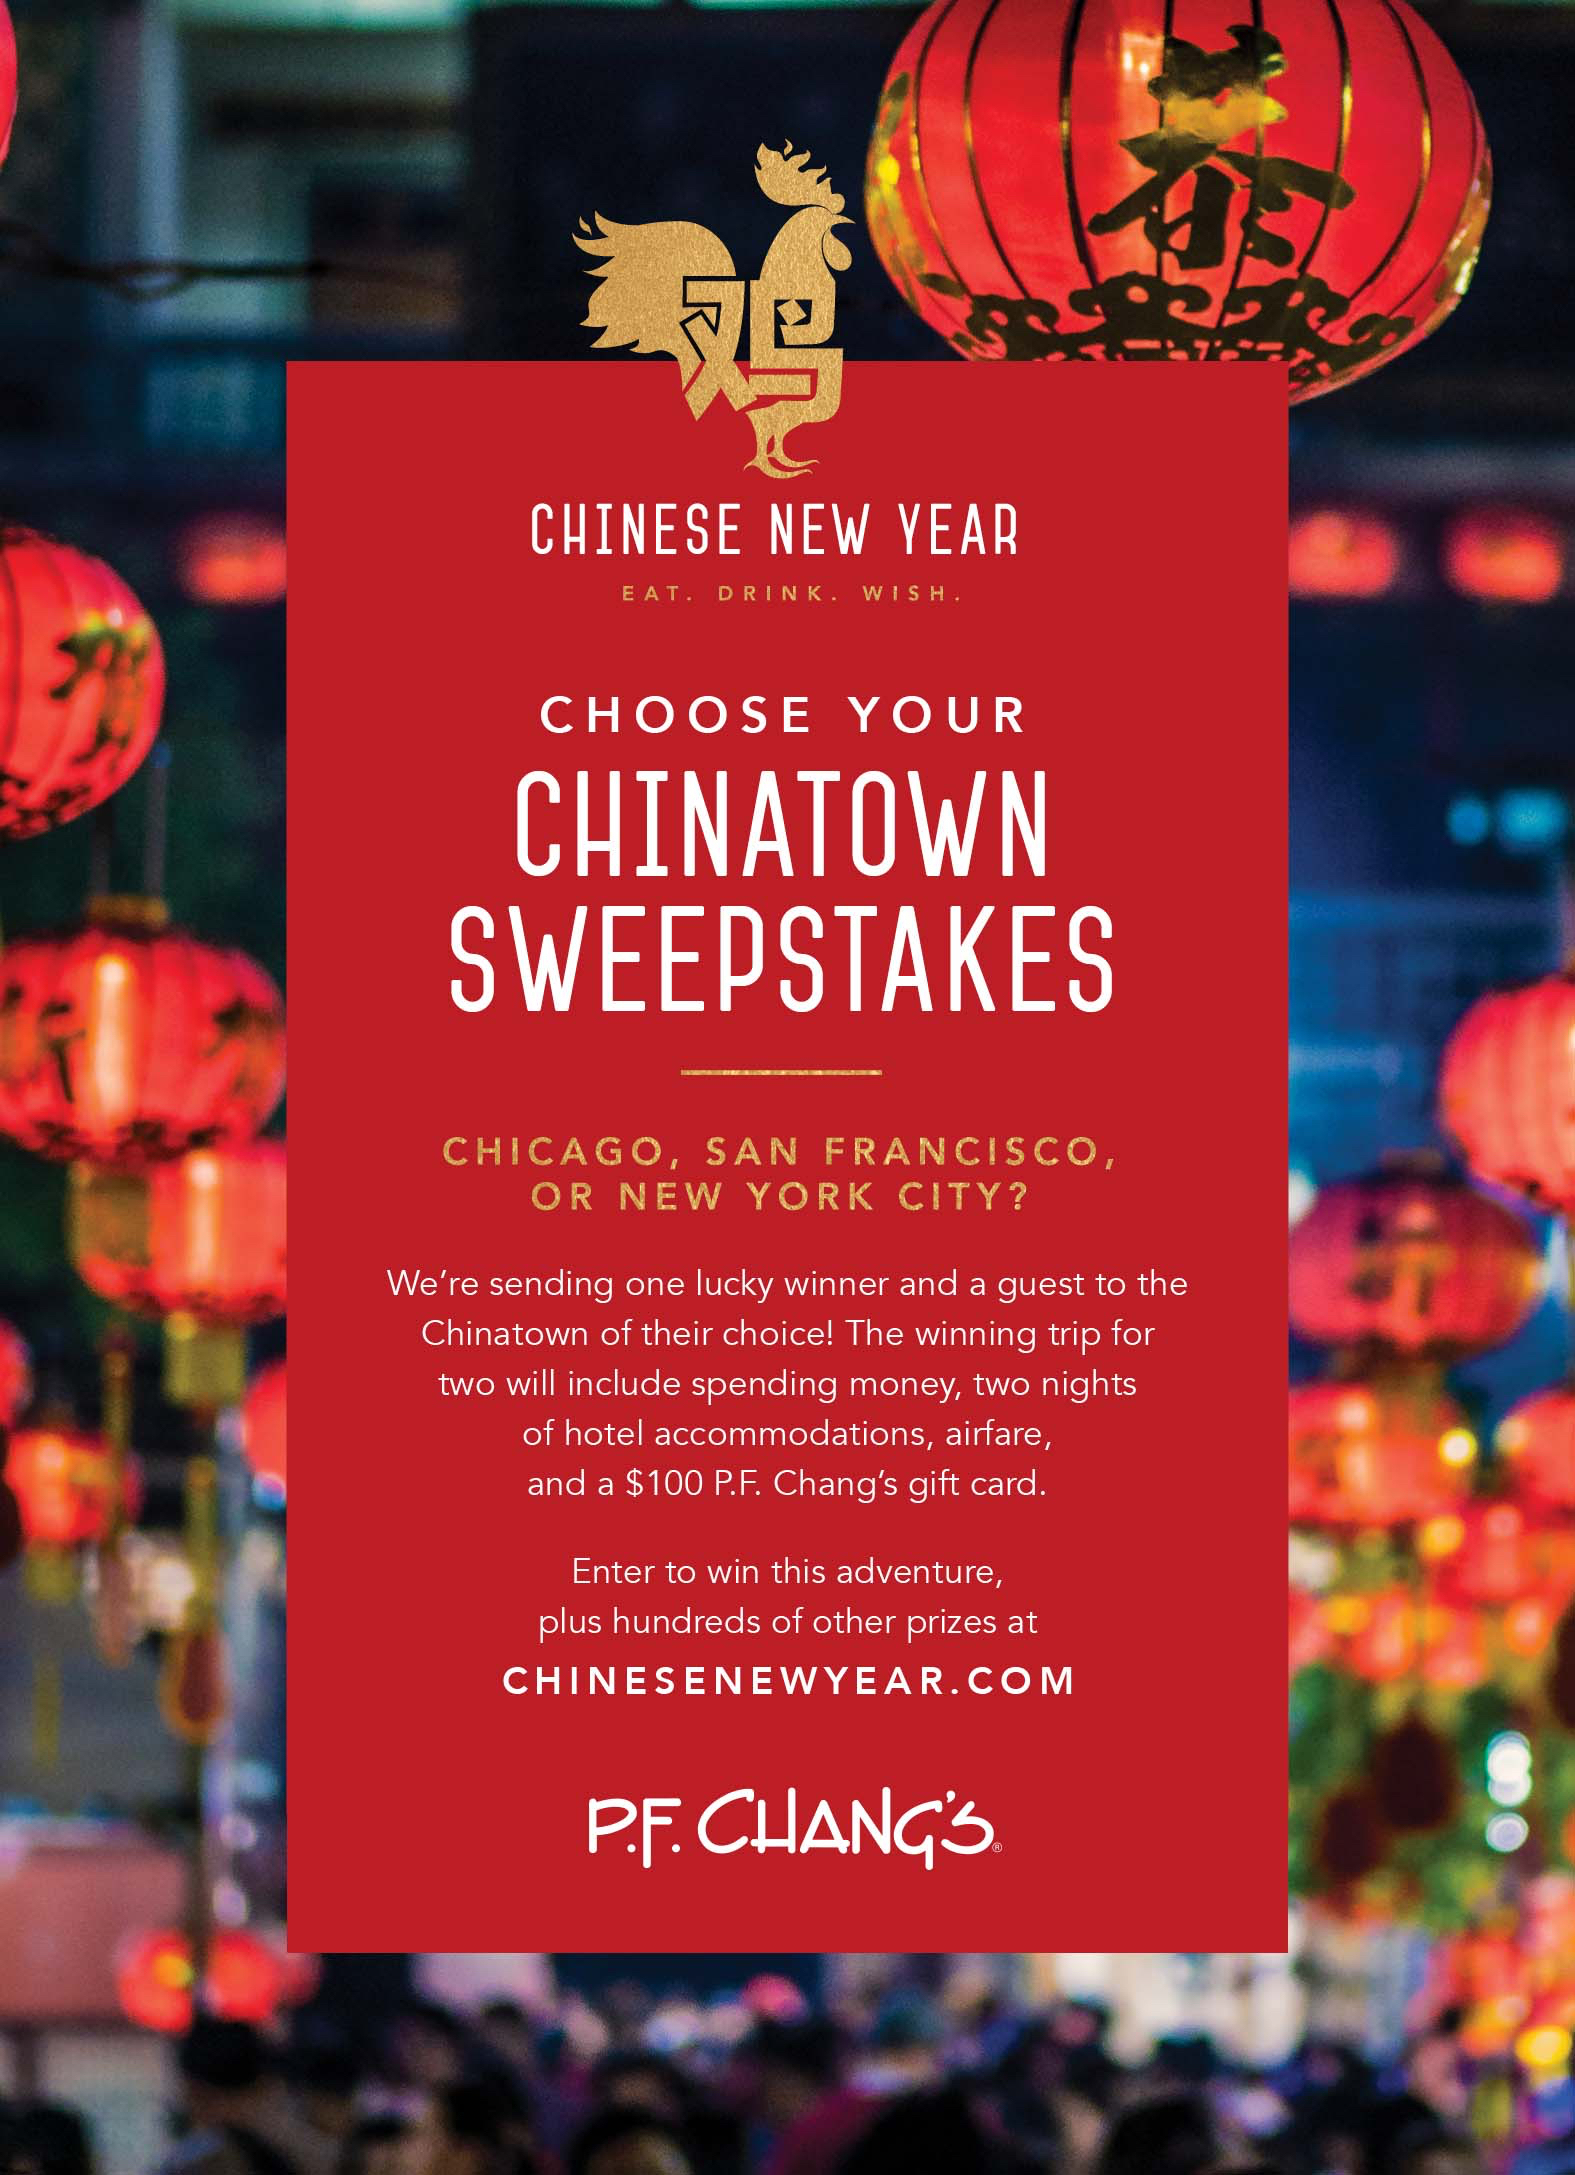 PF Changs Celebrating Chinese New Year by Giving Away More Than